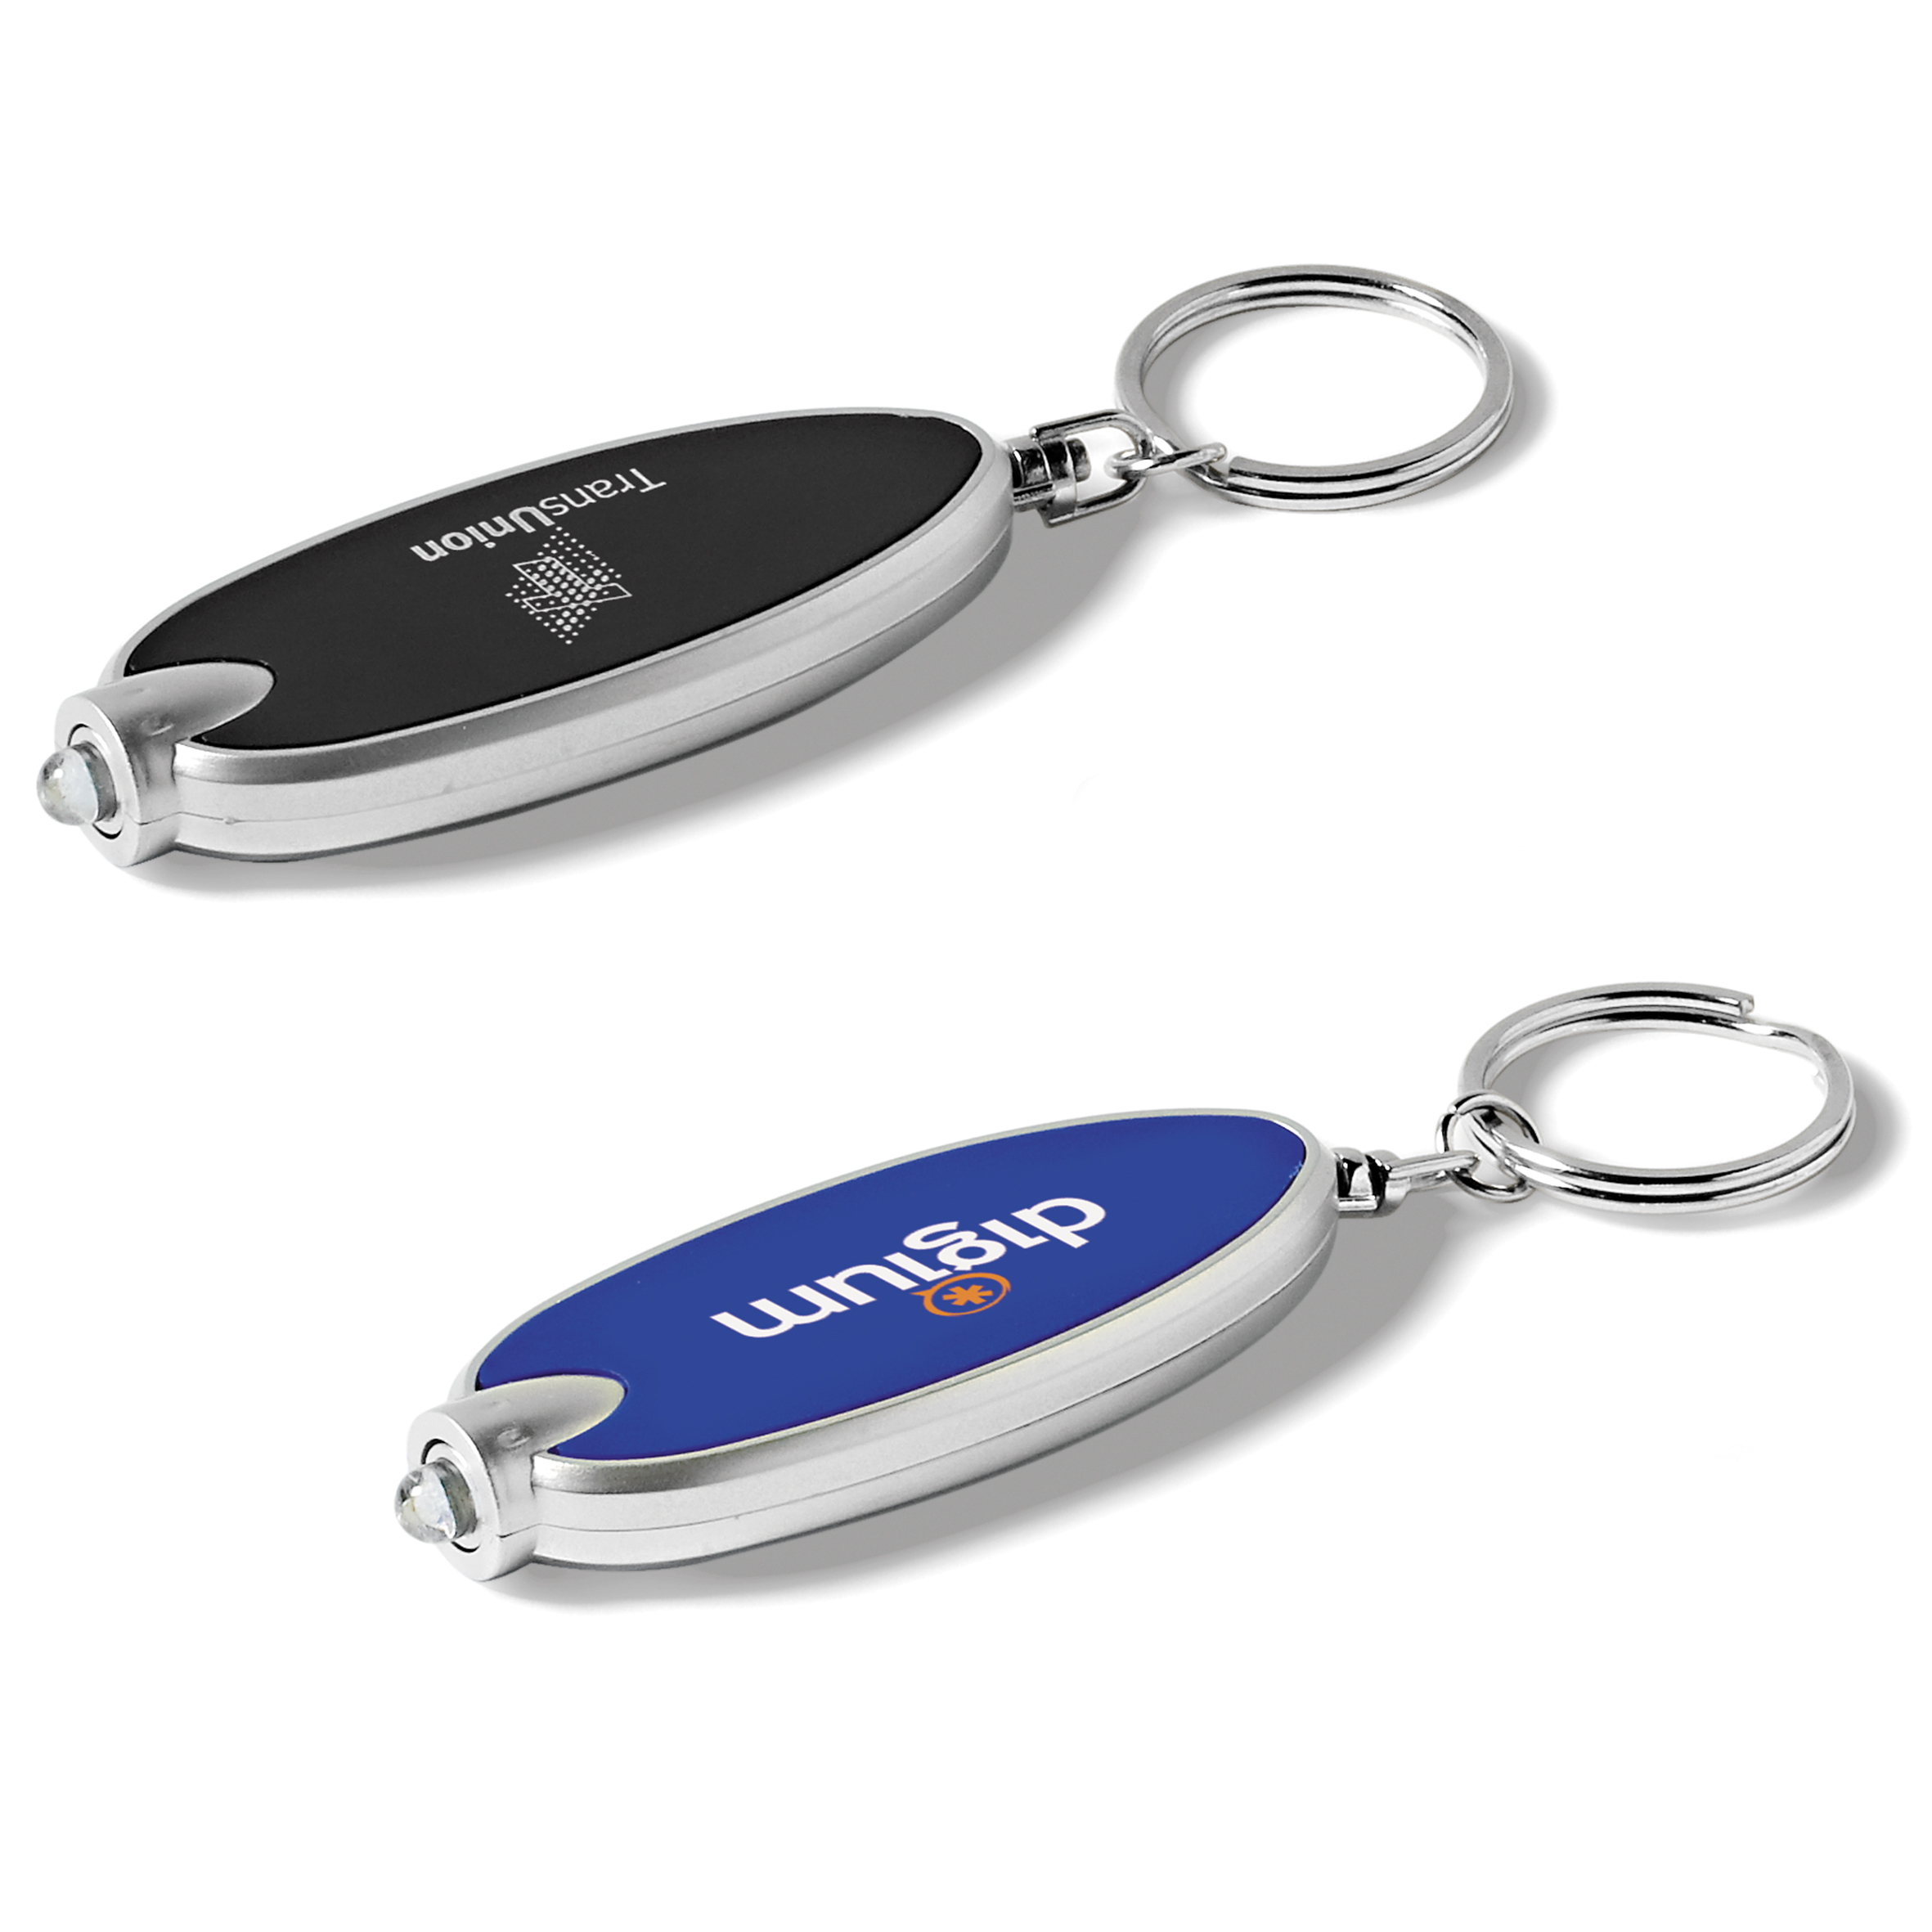 Product: Lucent Torch Keyholder